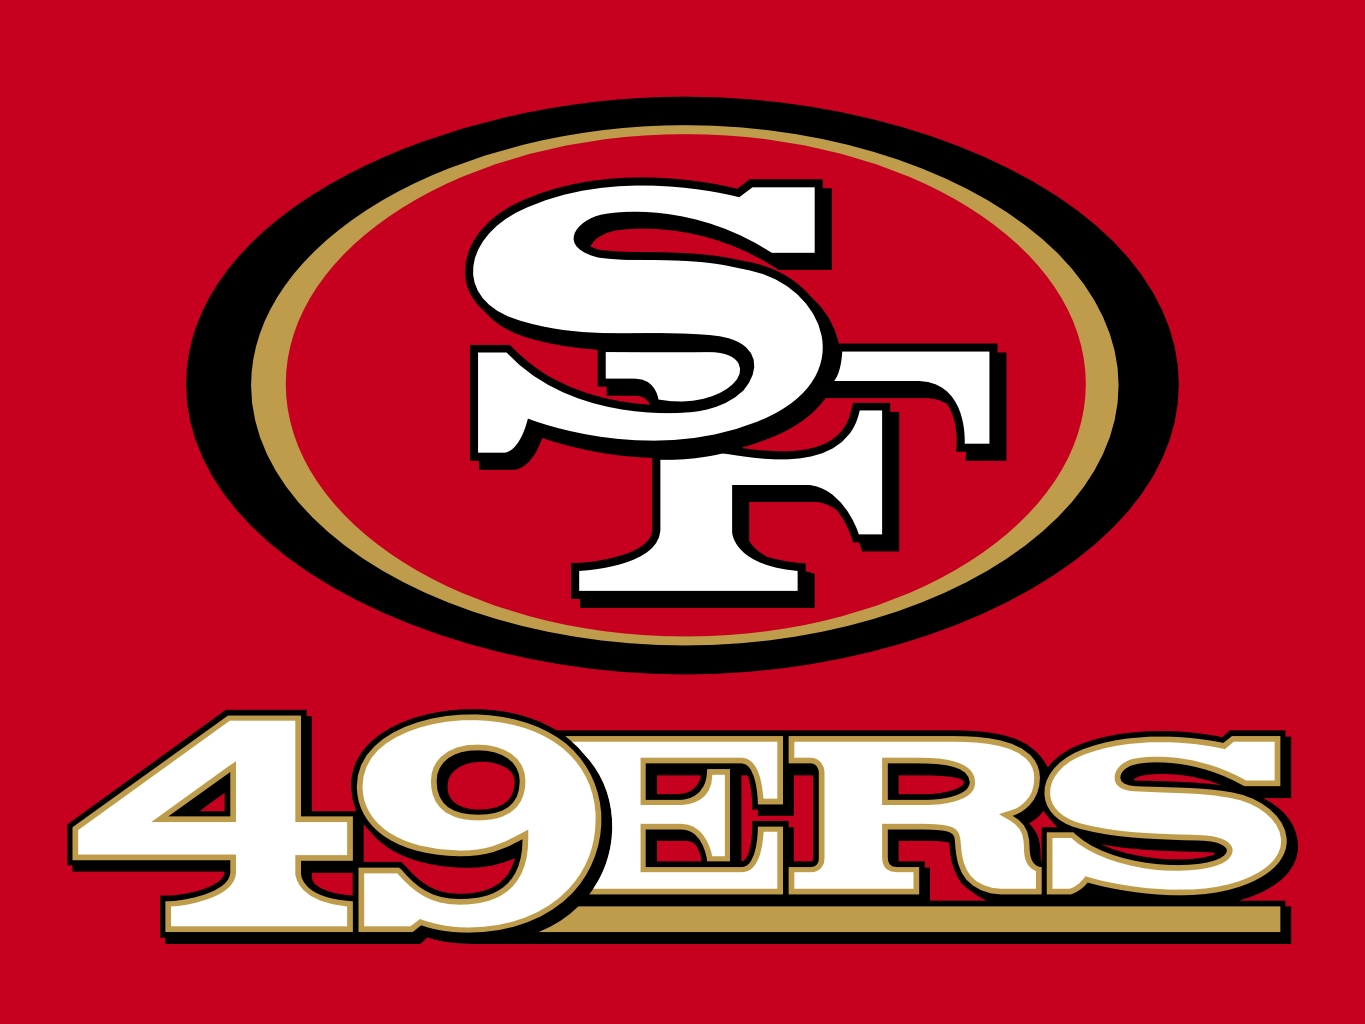 nfl teams san francisco 49ers collins flags blog rh collinsflags com Cowboys Logo Vector 49ers logo vector free